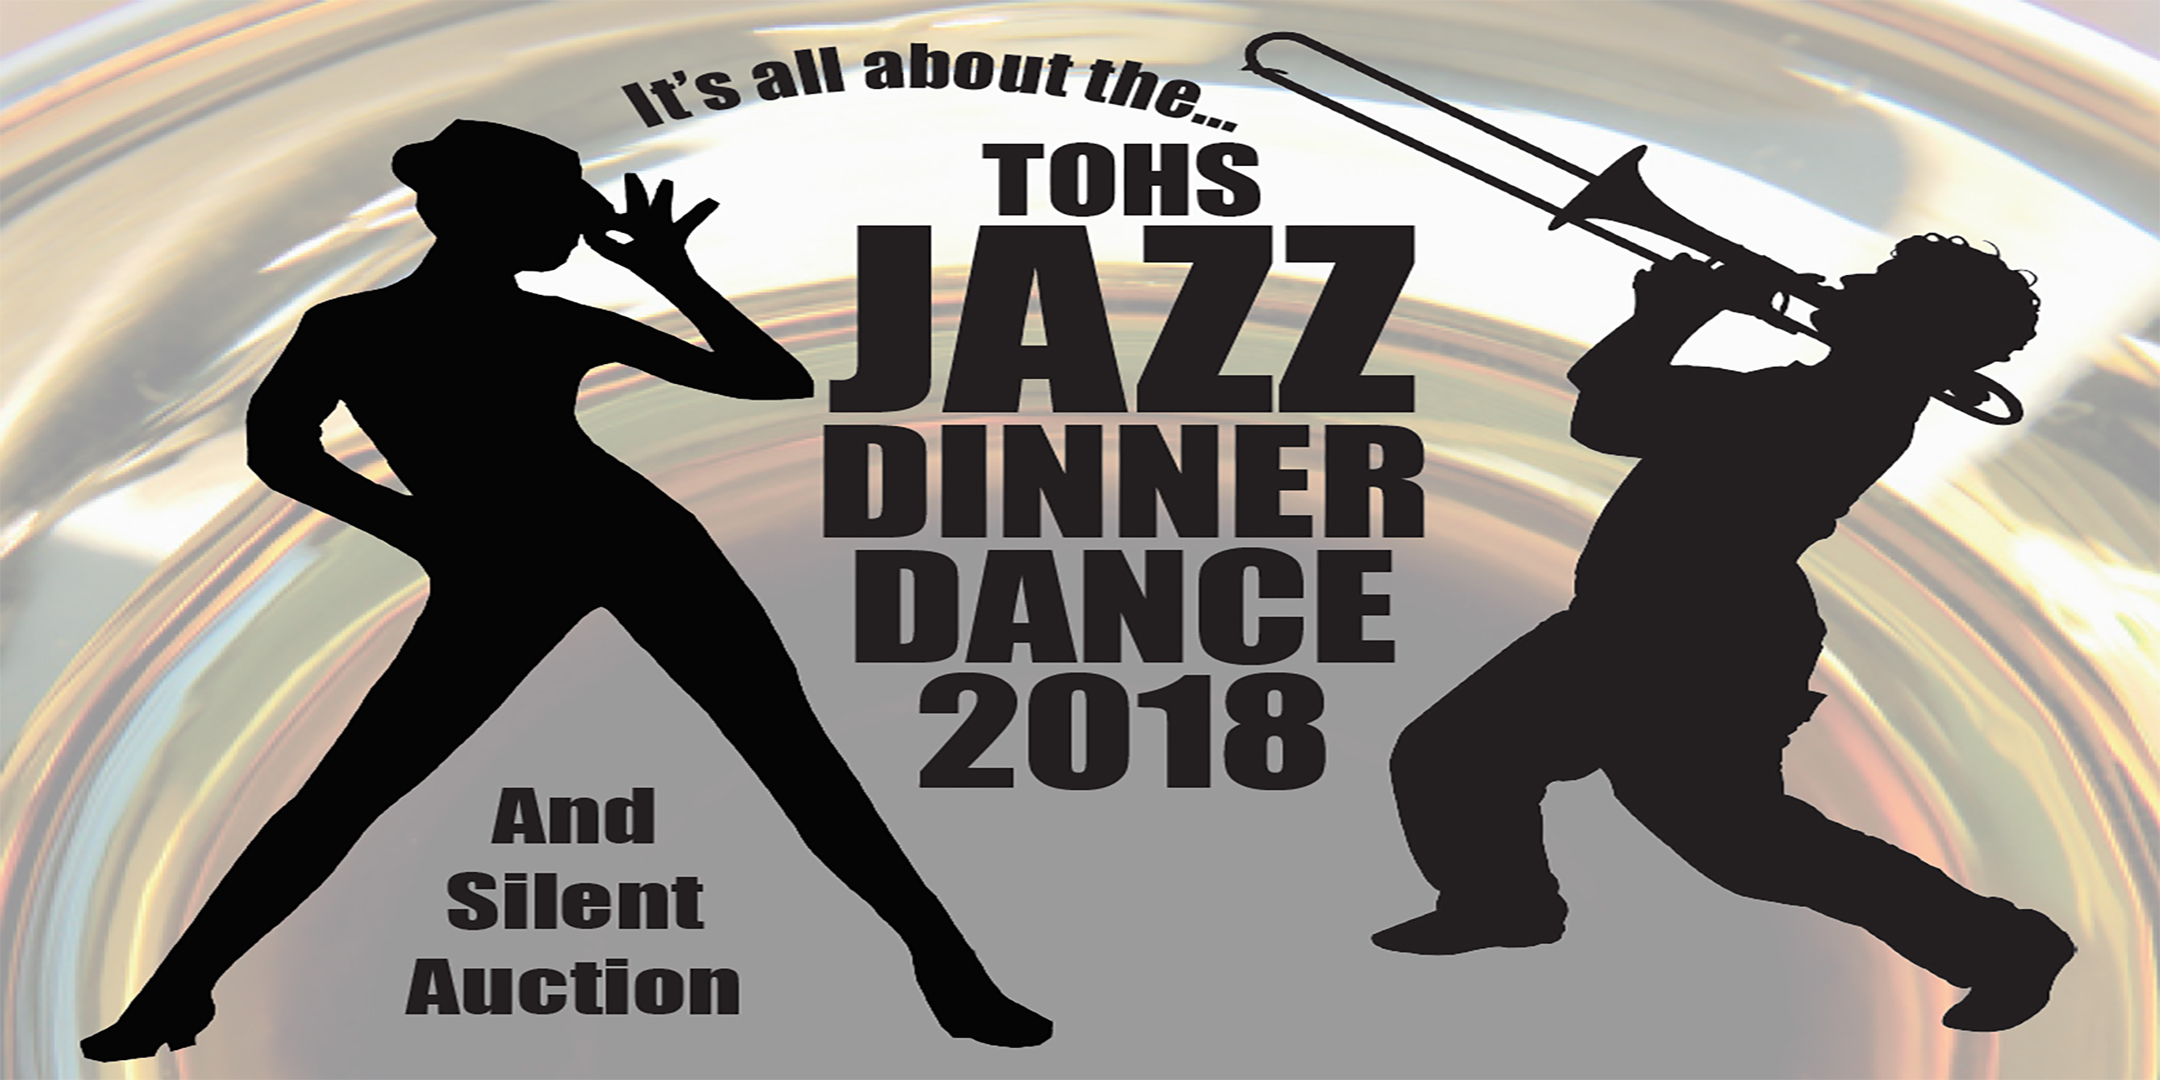 Jazz Nite 2018 EventBrite